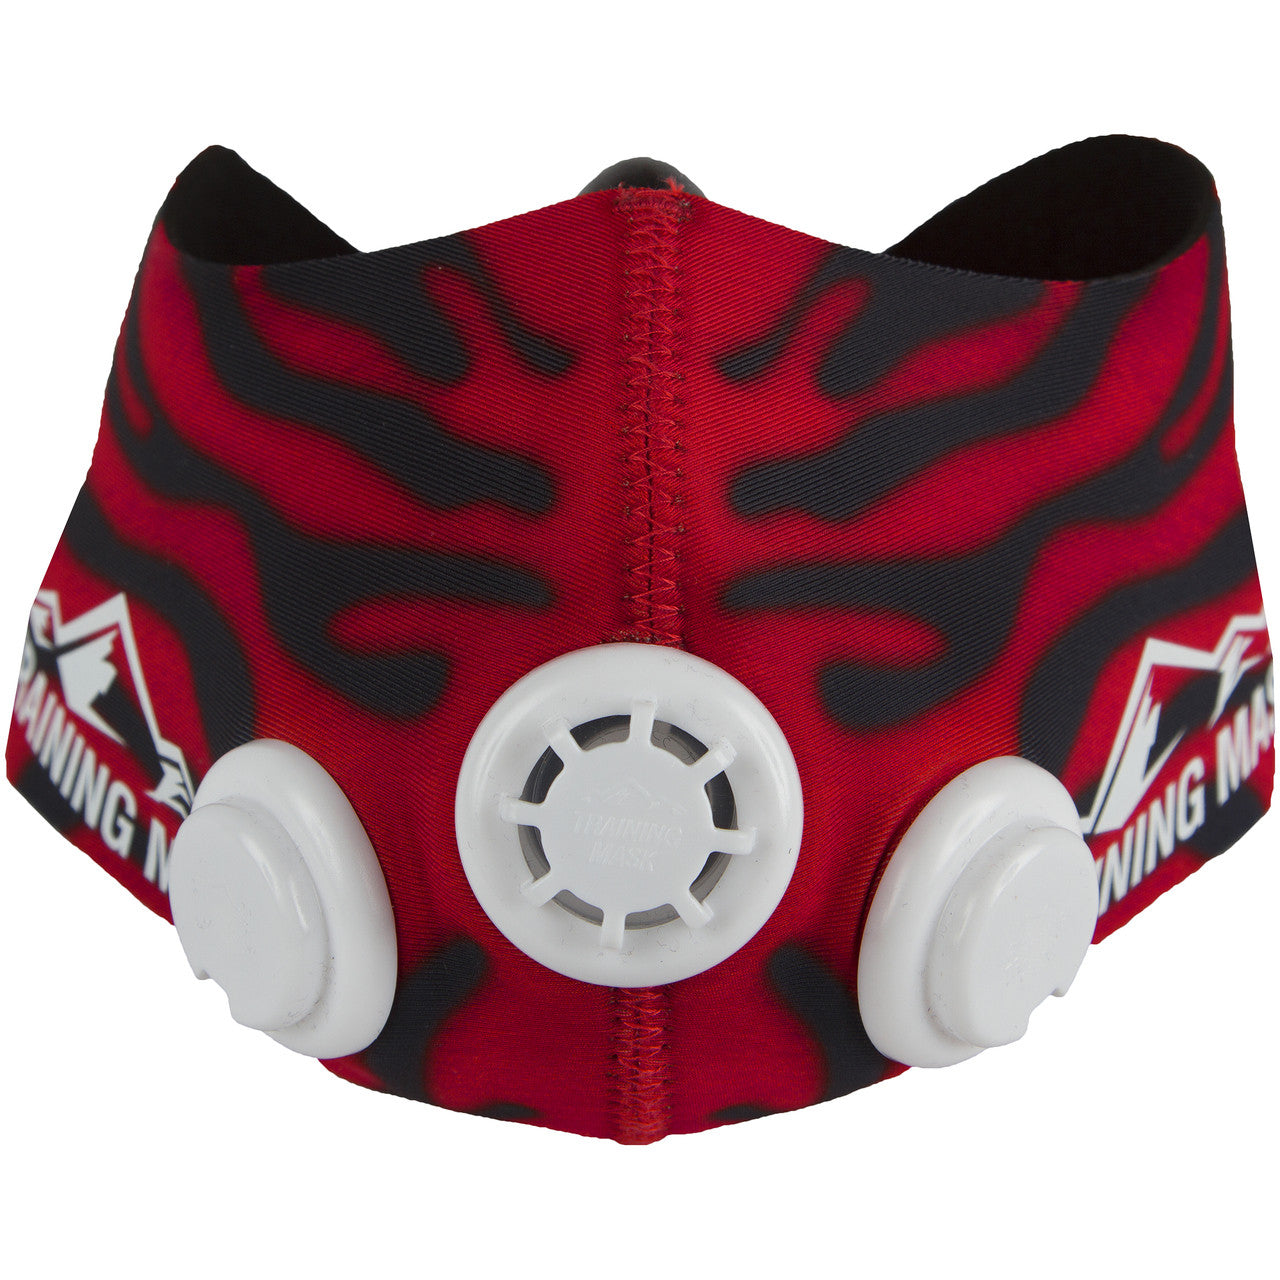 Training Mask 2.0 Red Tiger Sleeve